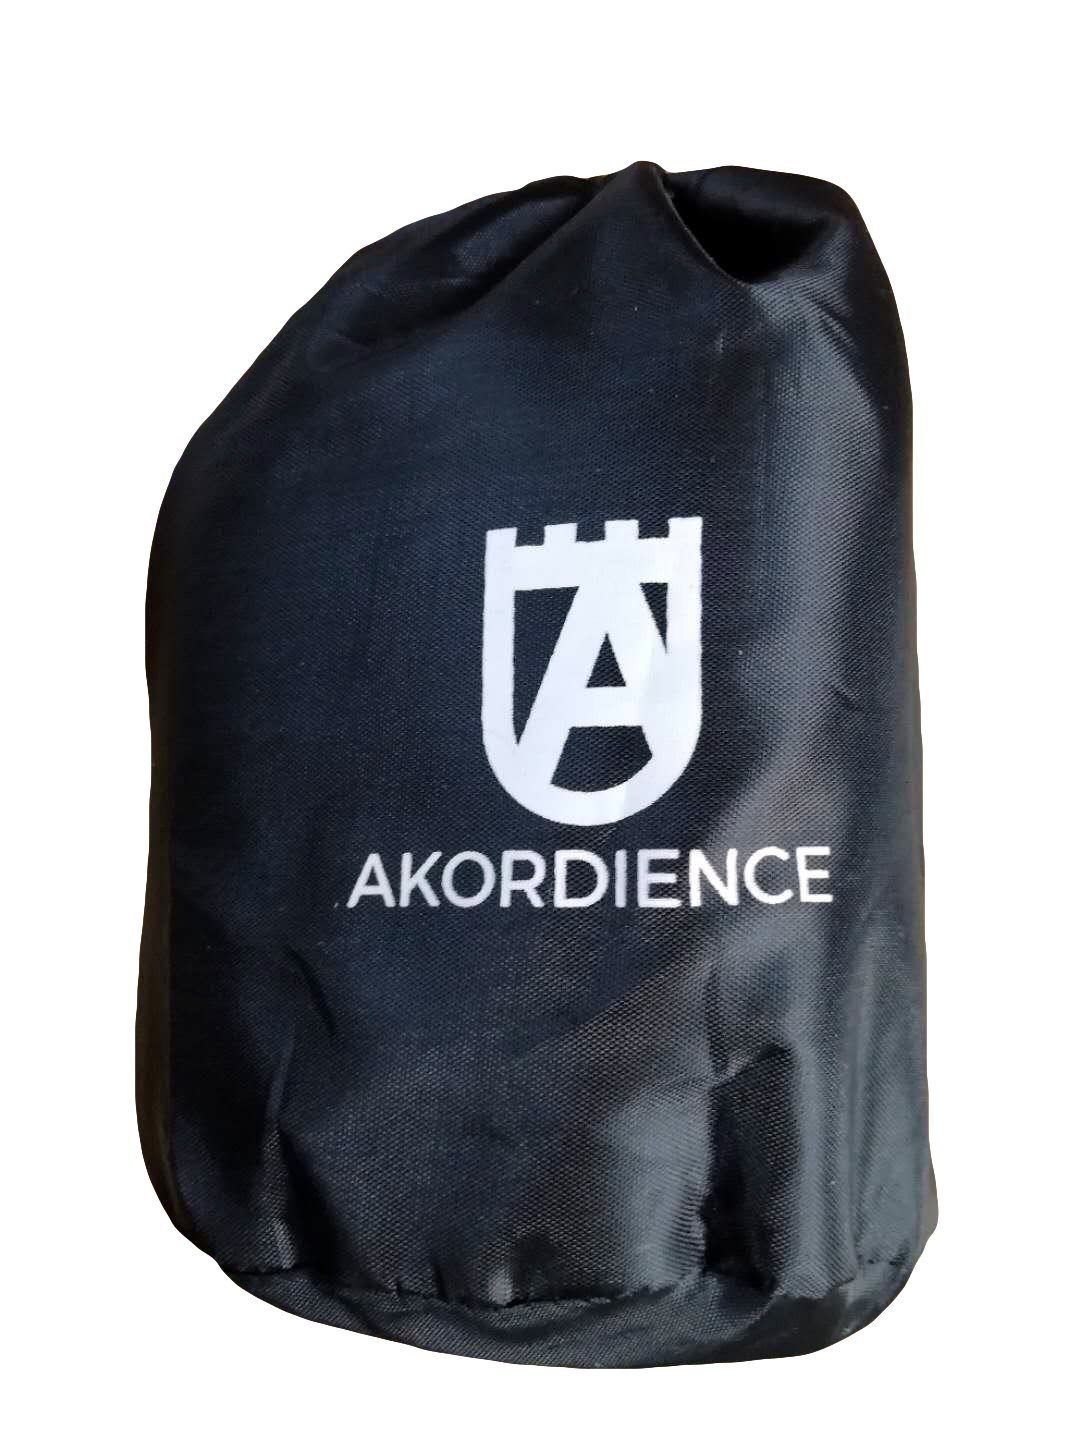 Akordience Head Hammock - Portable Cervical Traction Device - - Easily Attach to Any Door Or Railing for Chronic Neck & Shoulder Pain Relief